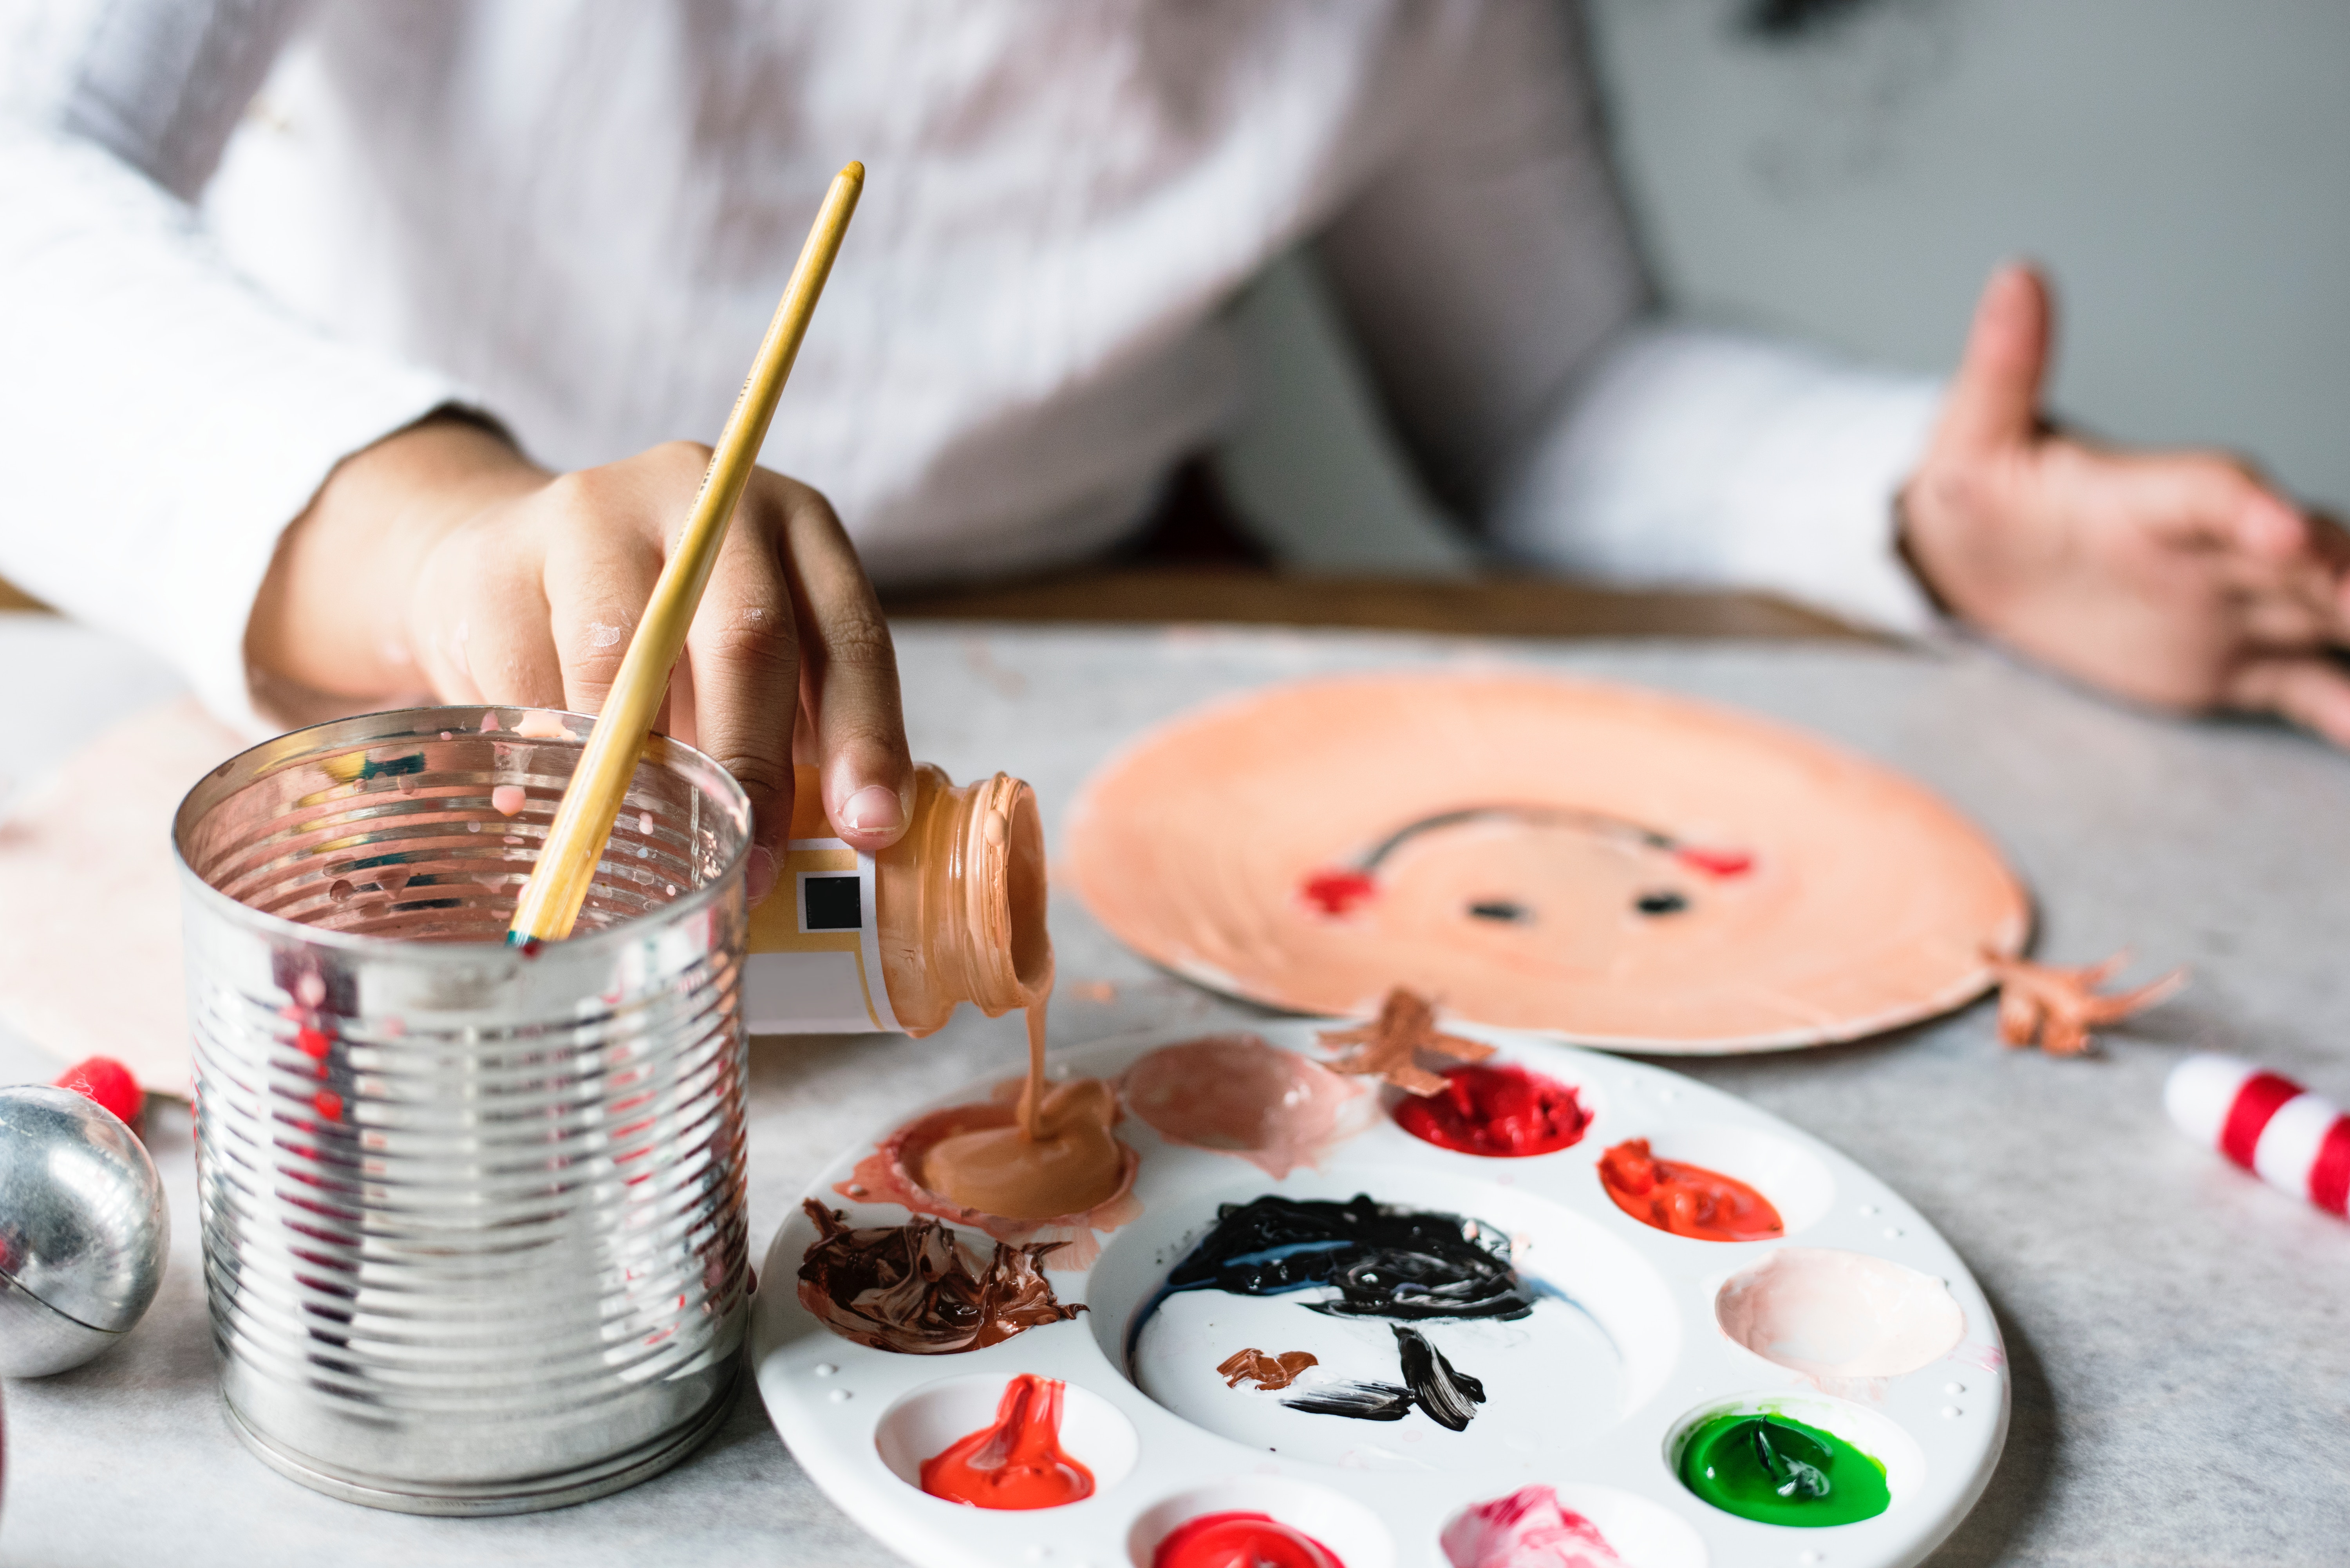 scribble-and-scratch-free-art-classes-in-bristol-free-things-to-do-for-families-in-bristol